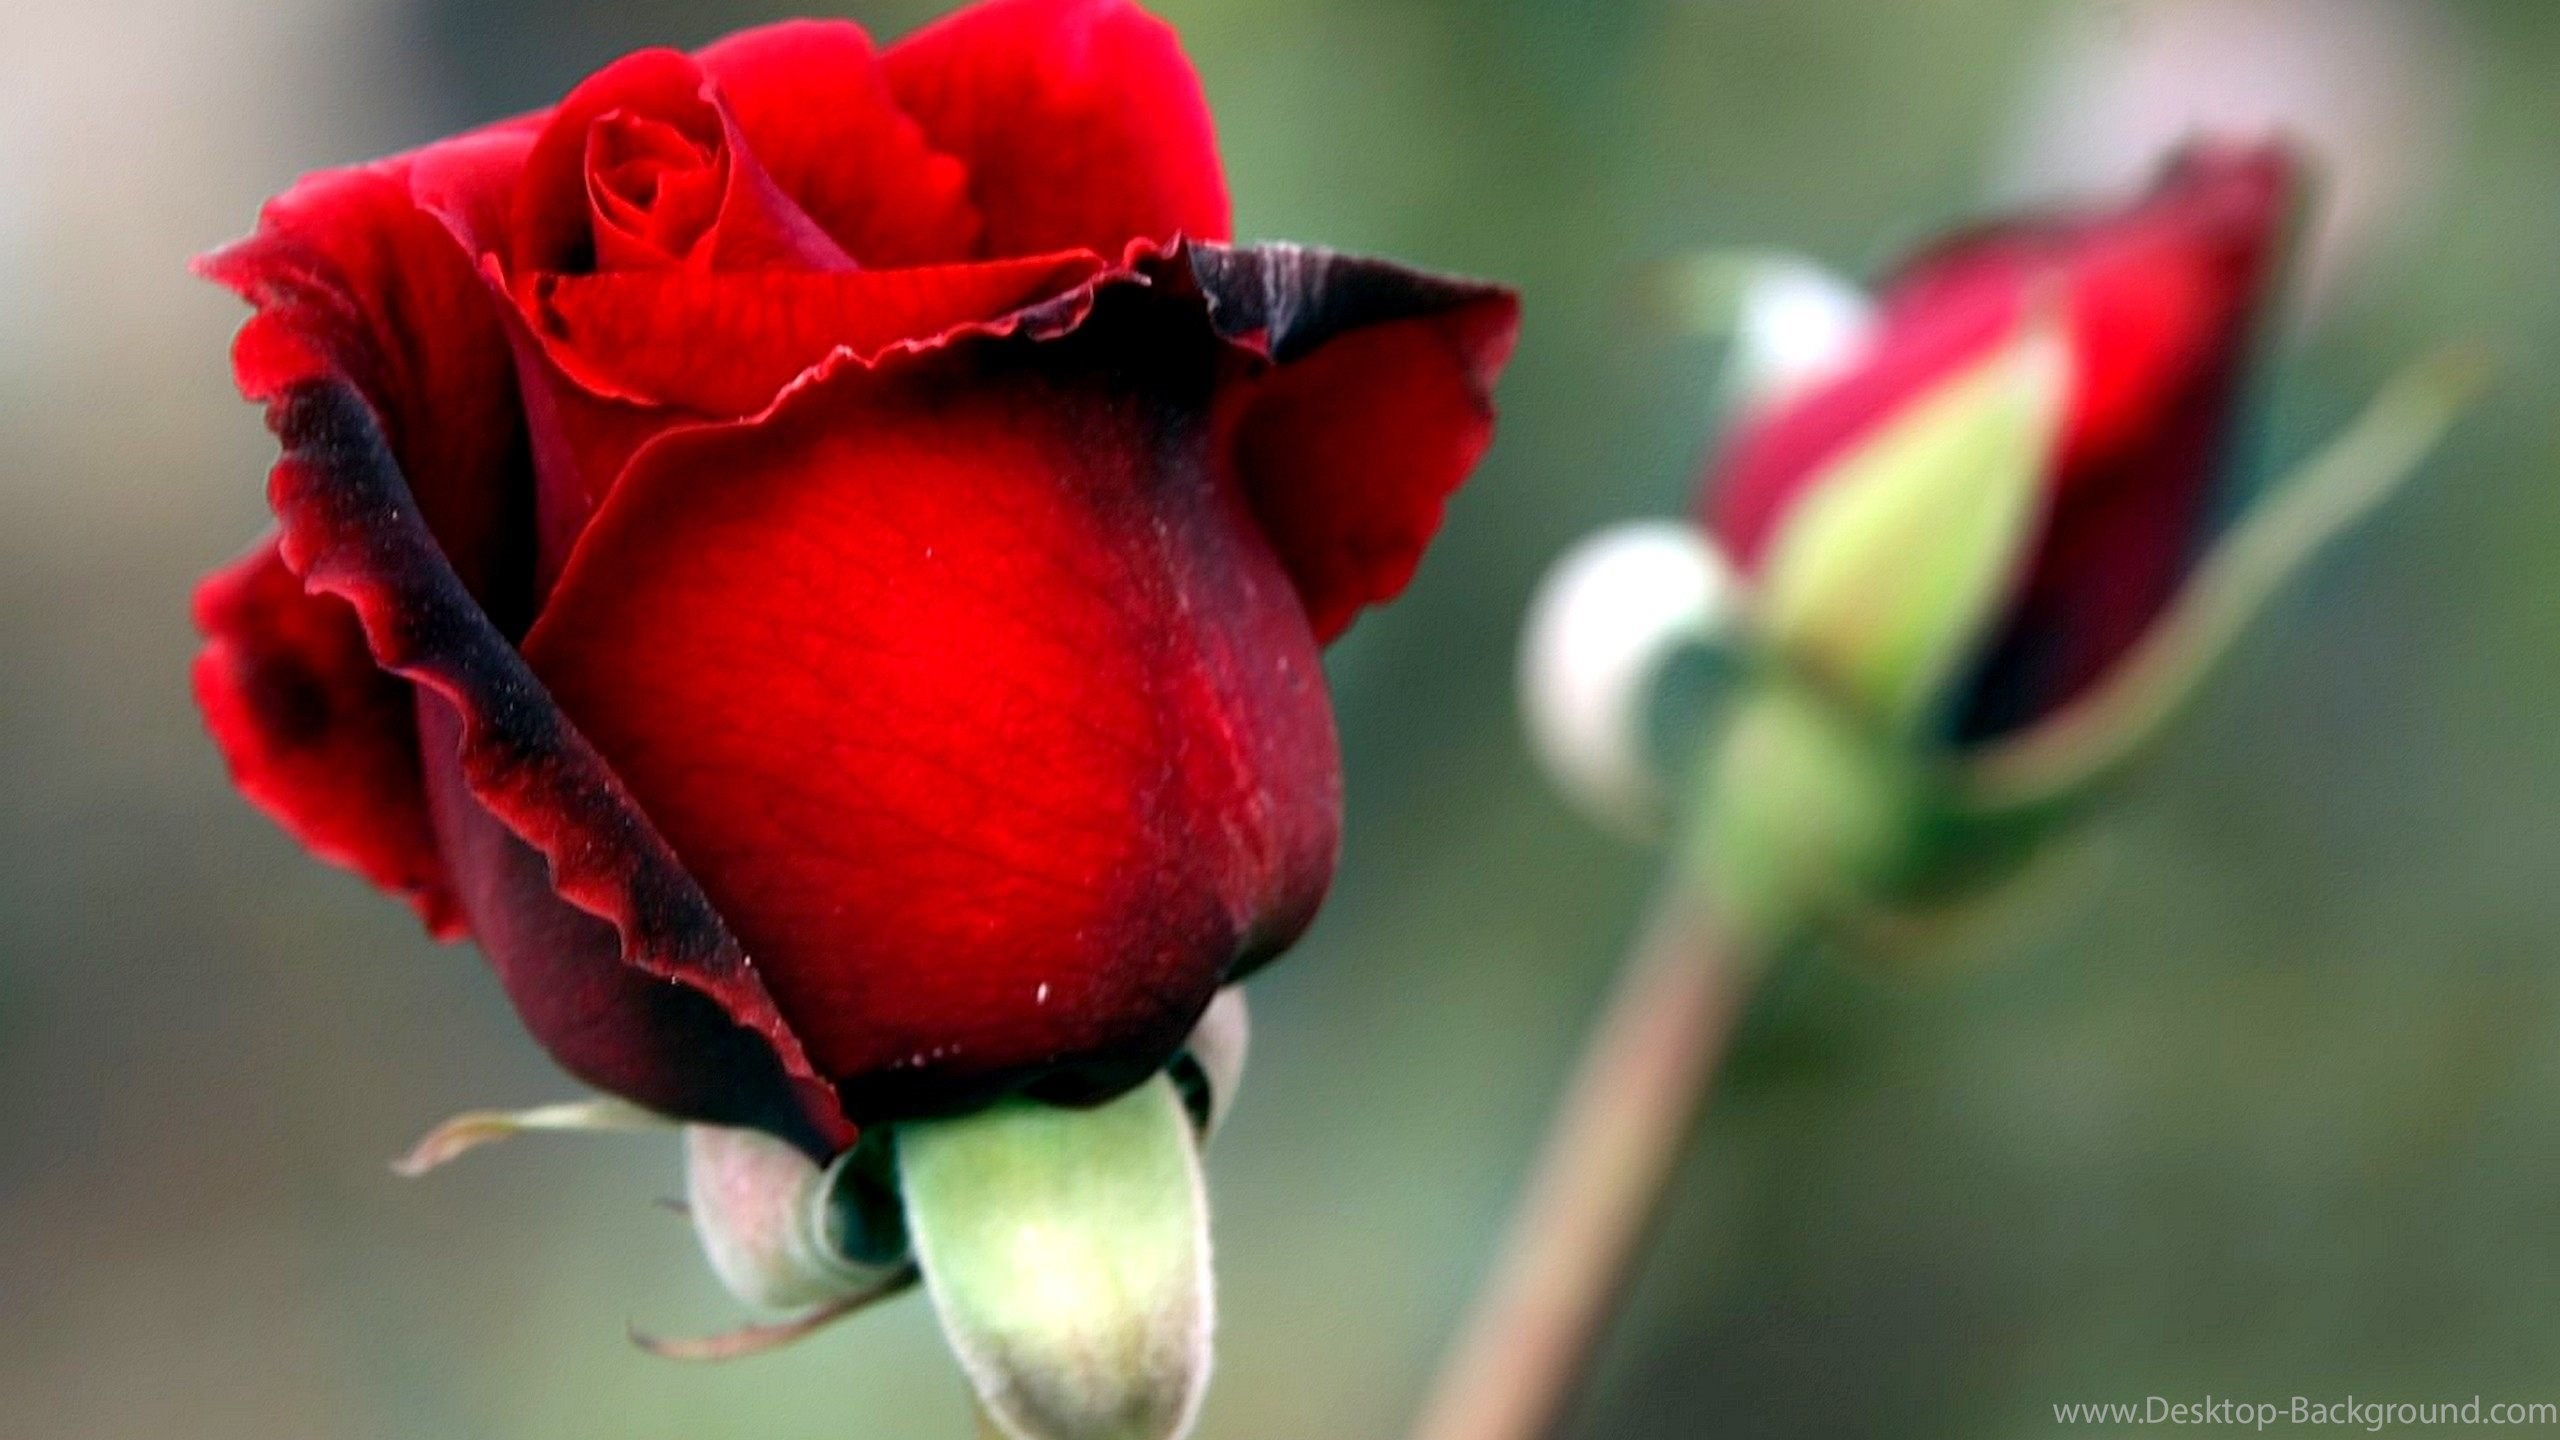 Rose Flower Wallpaper For Android Phone Flowers Healthy - Butterfly On A Bud Rose , HD Wallpaper & Backgrounds